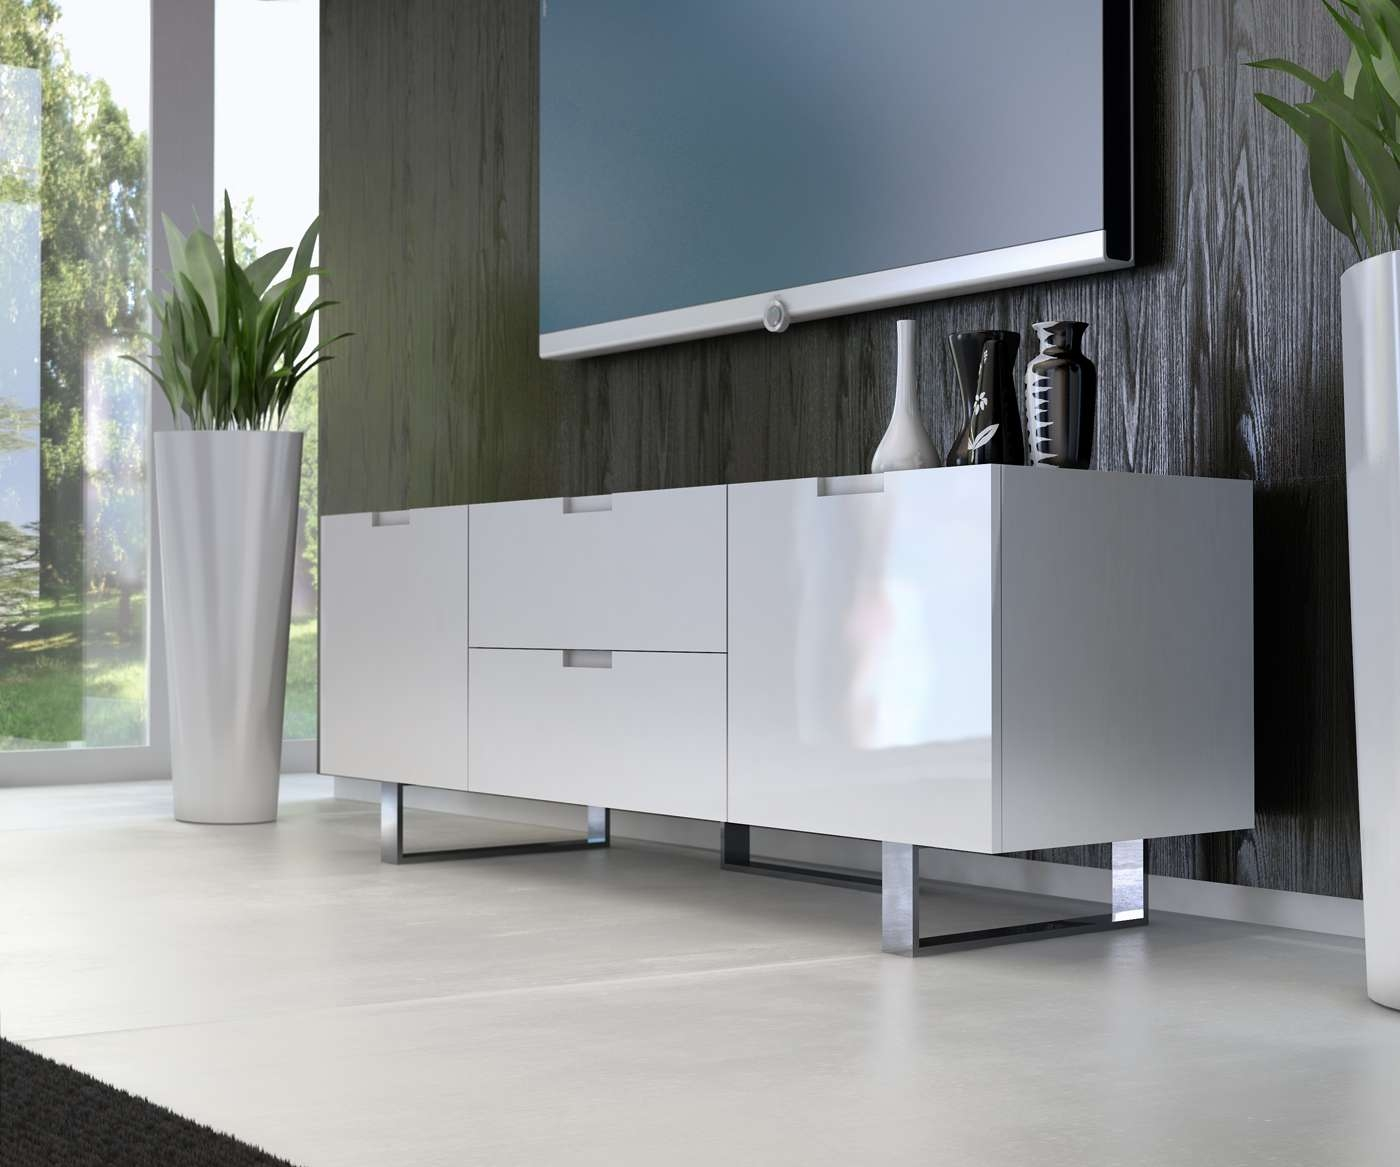 Contemporary Tv Stand In Wenge Walnut Or White Lacquer San Diego Intended For Modern Style Tv Stands (View 9 of 15)